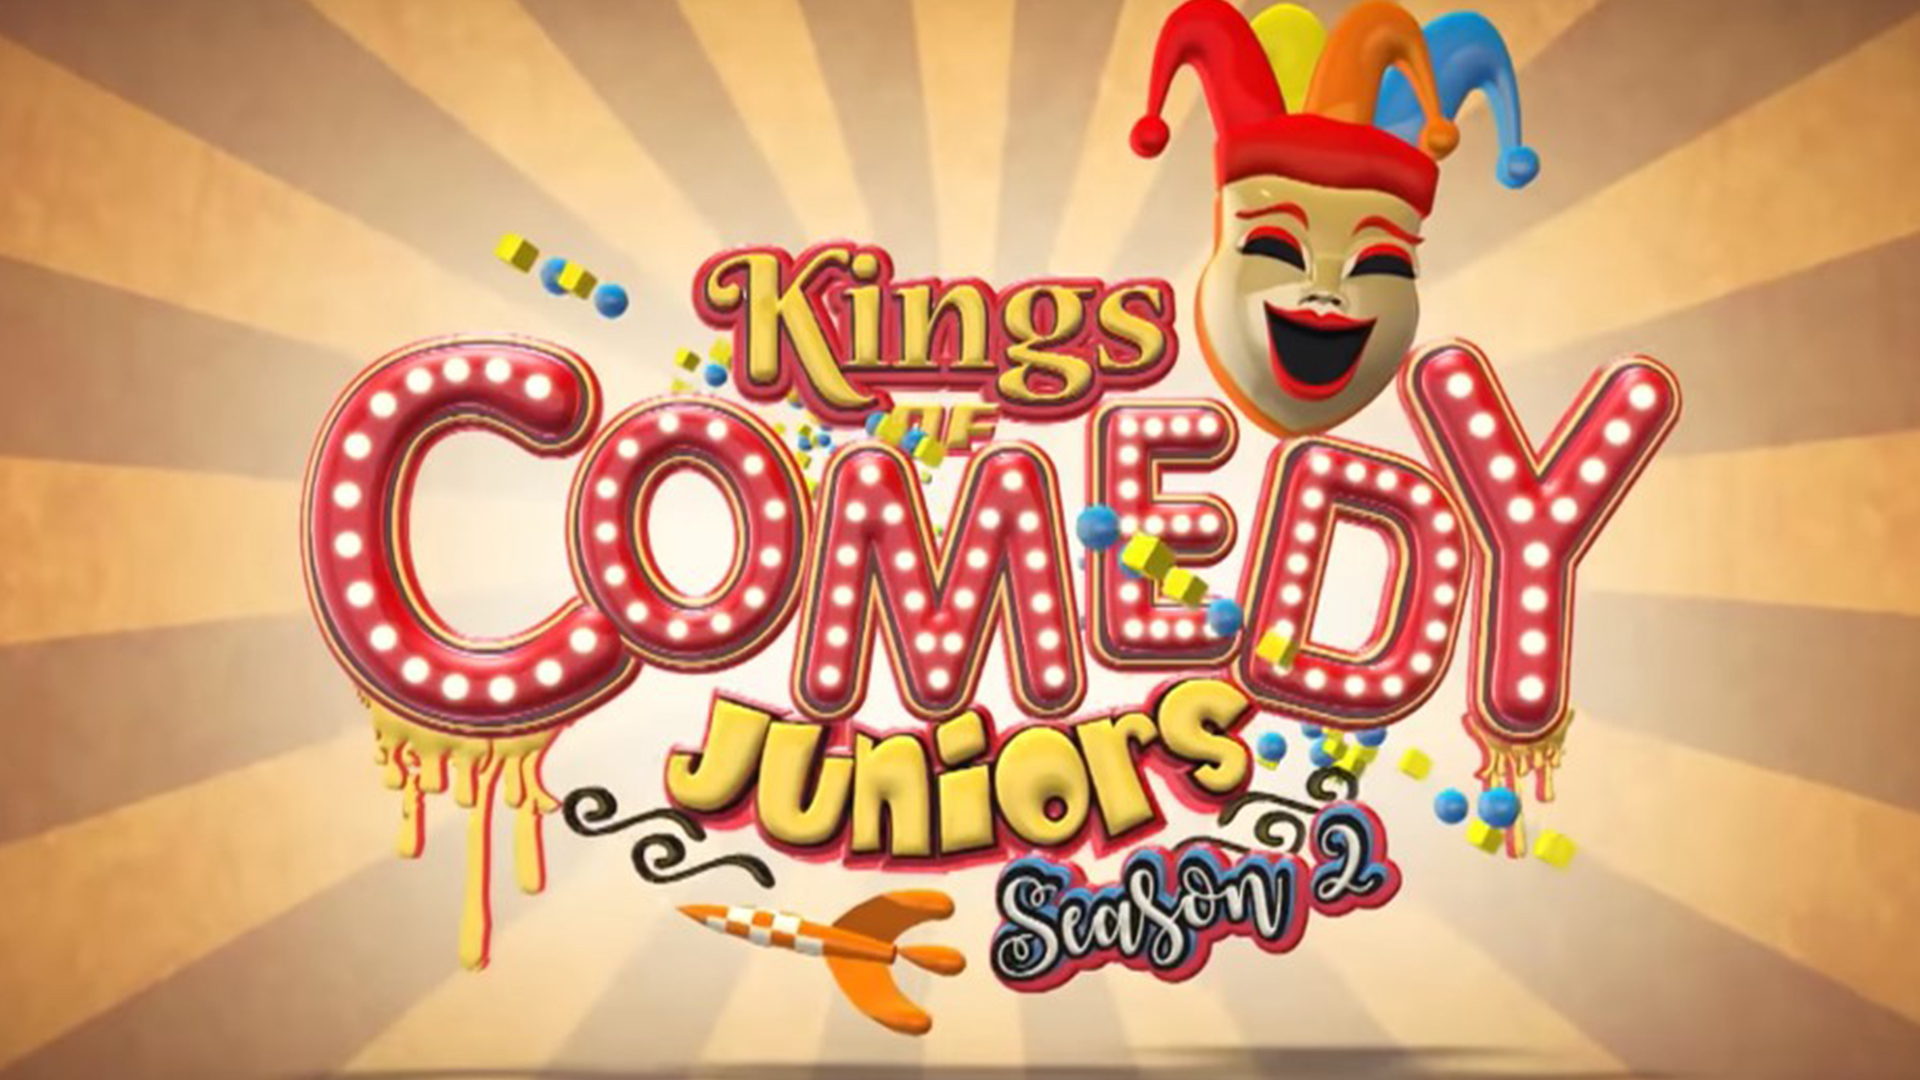 KINGS OF COMEDY JUNIOR